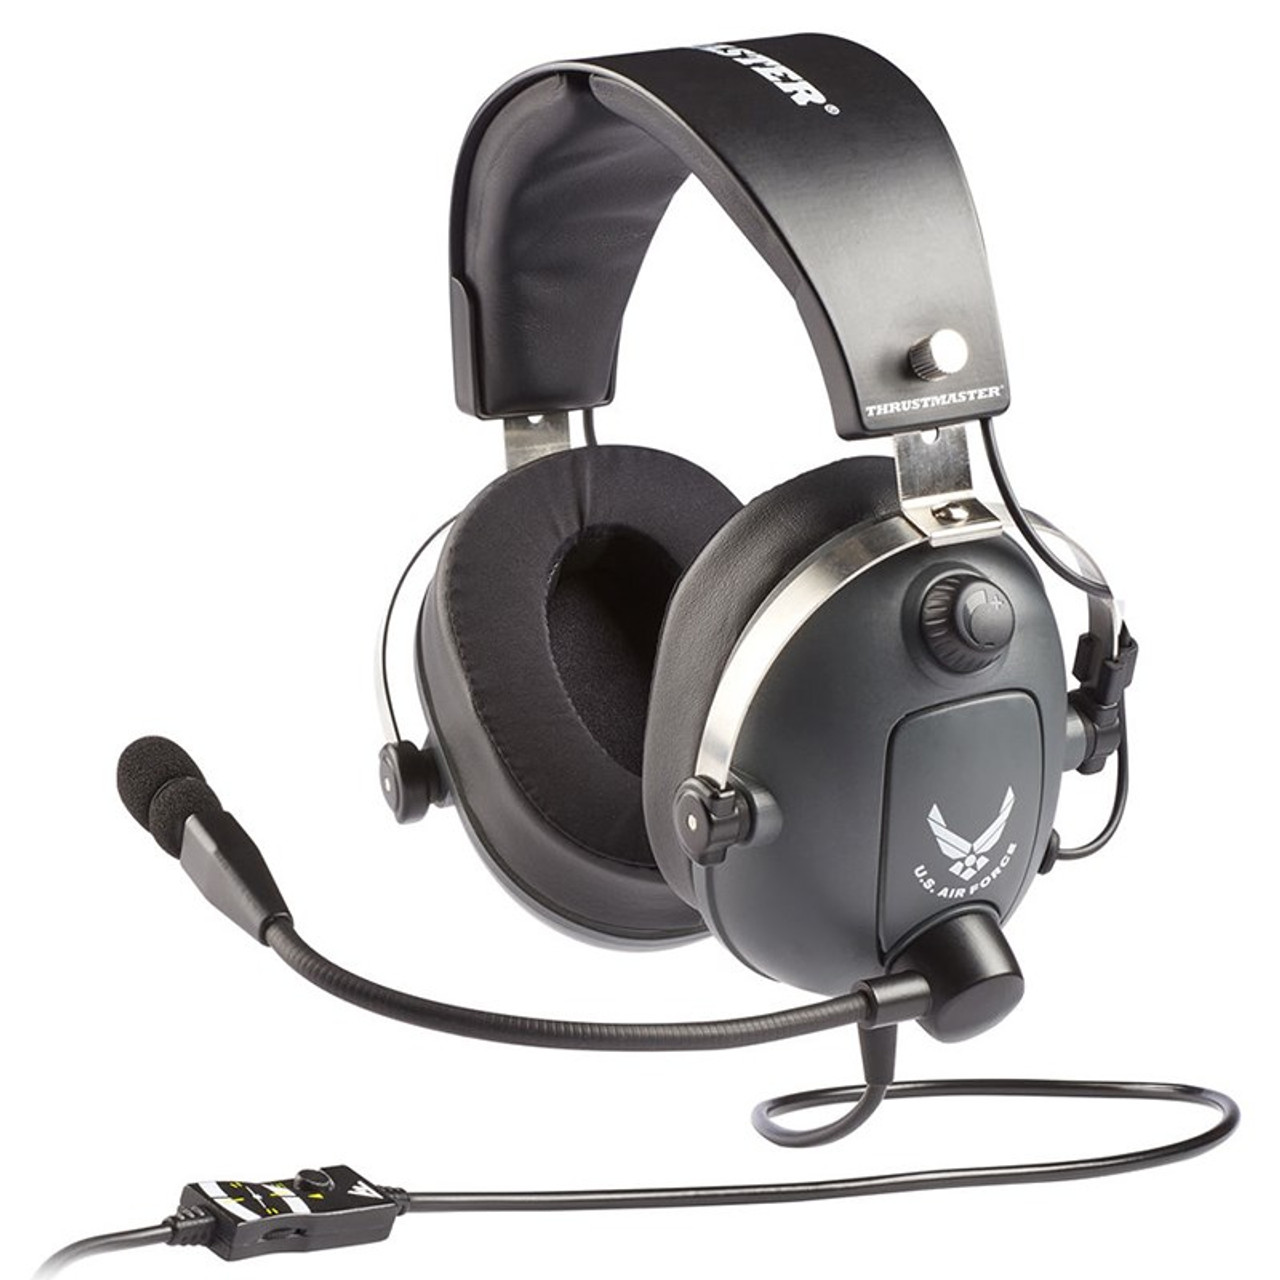 Image for Thrustmaster T-FLIGHT US Air Force Edition Gaming Headset CX Computer Superstore